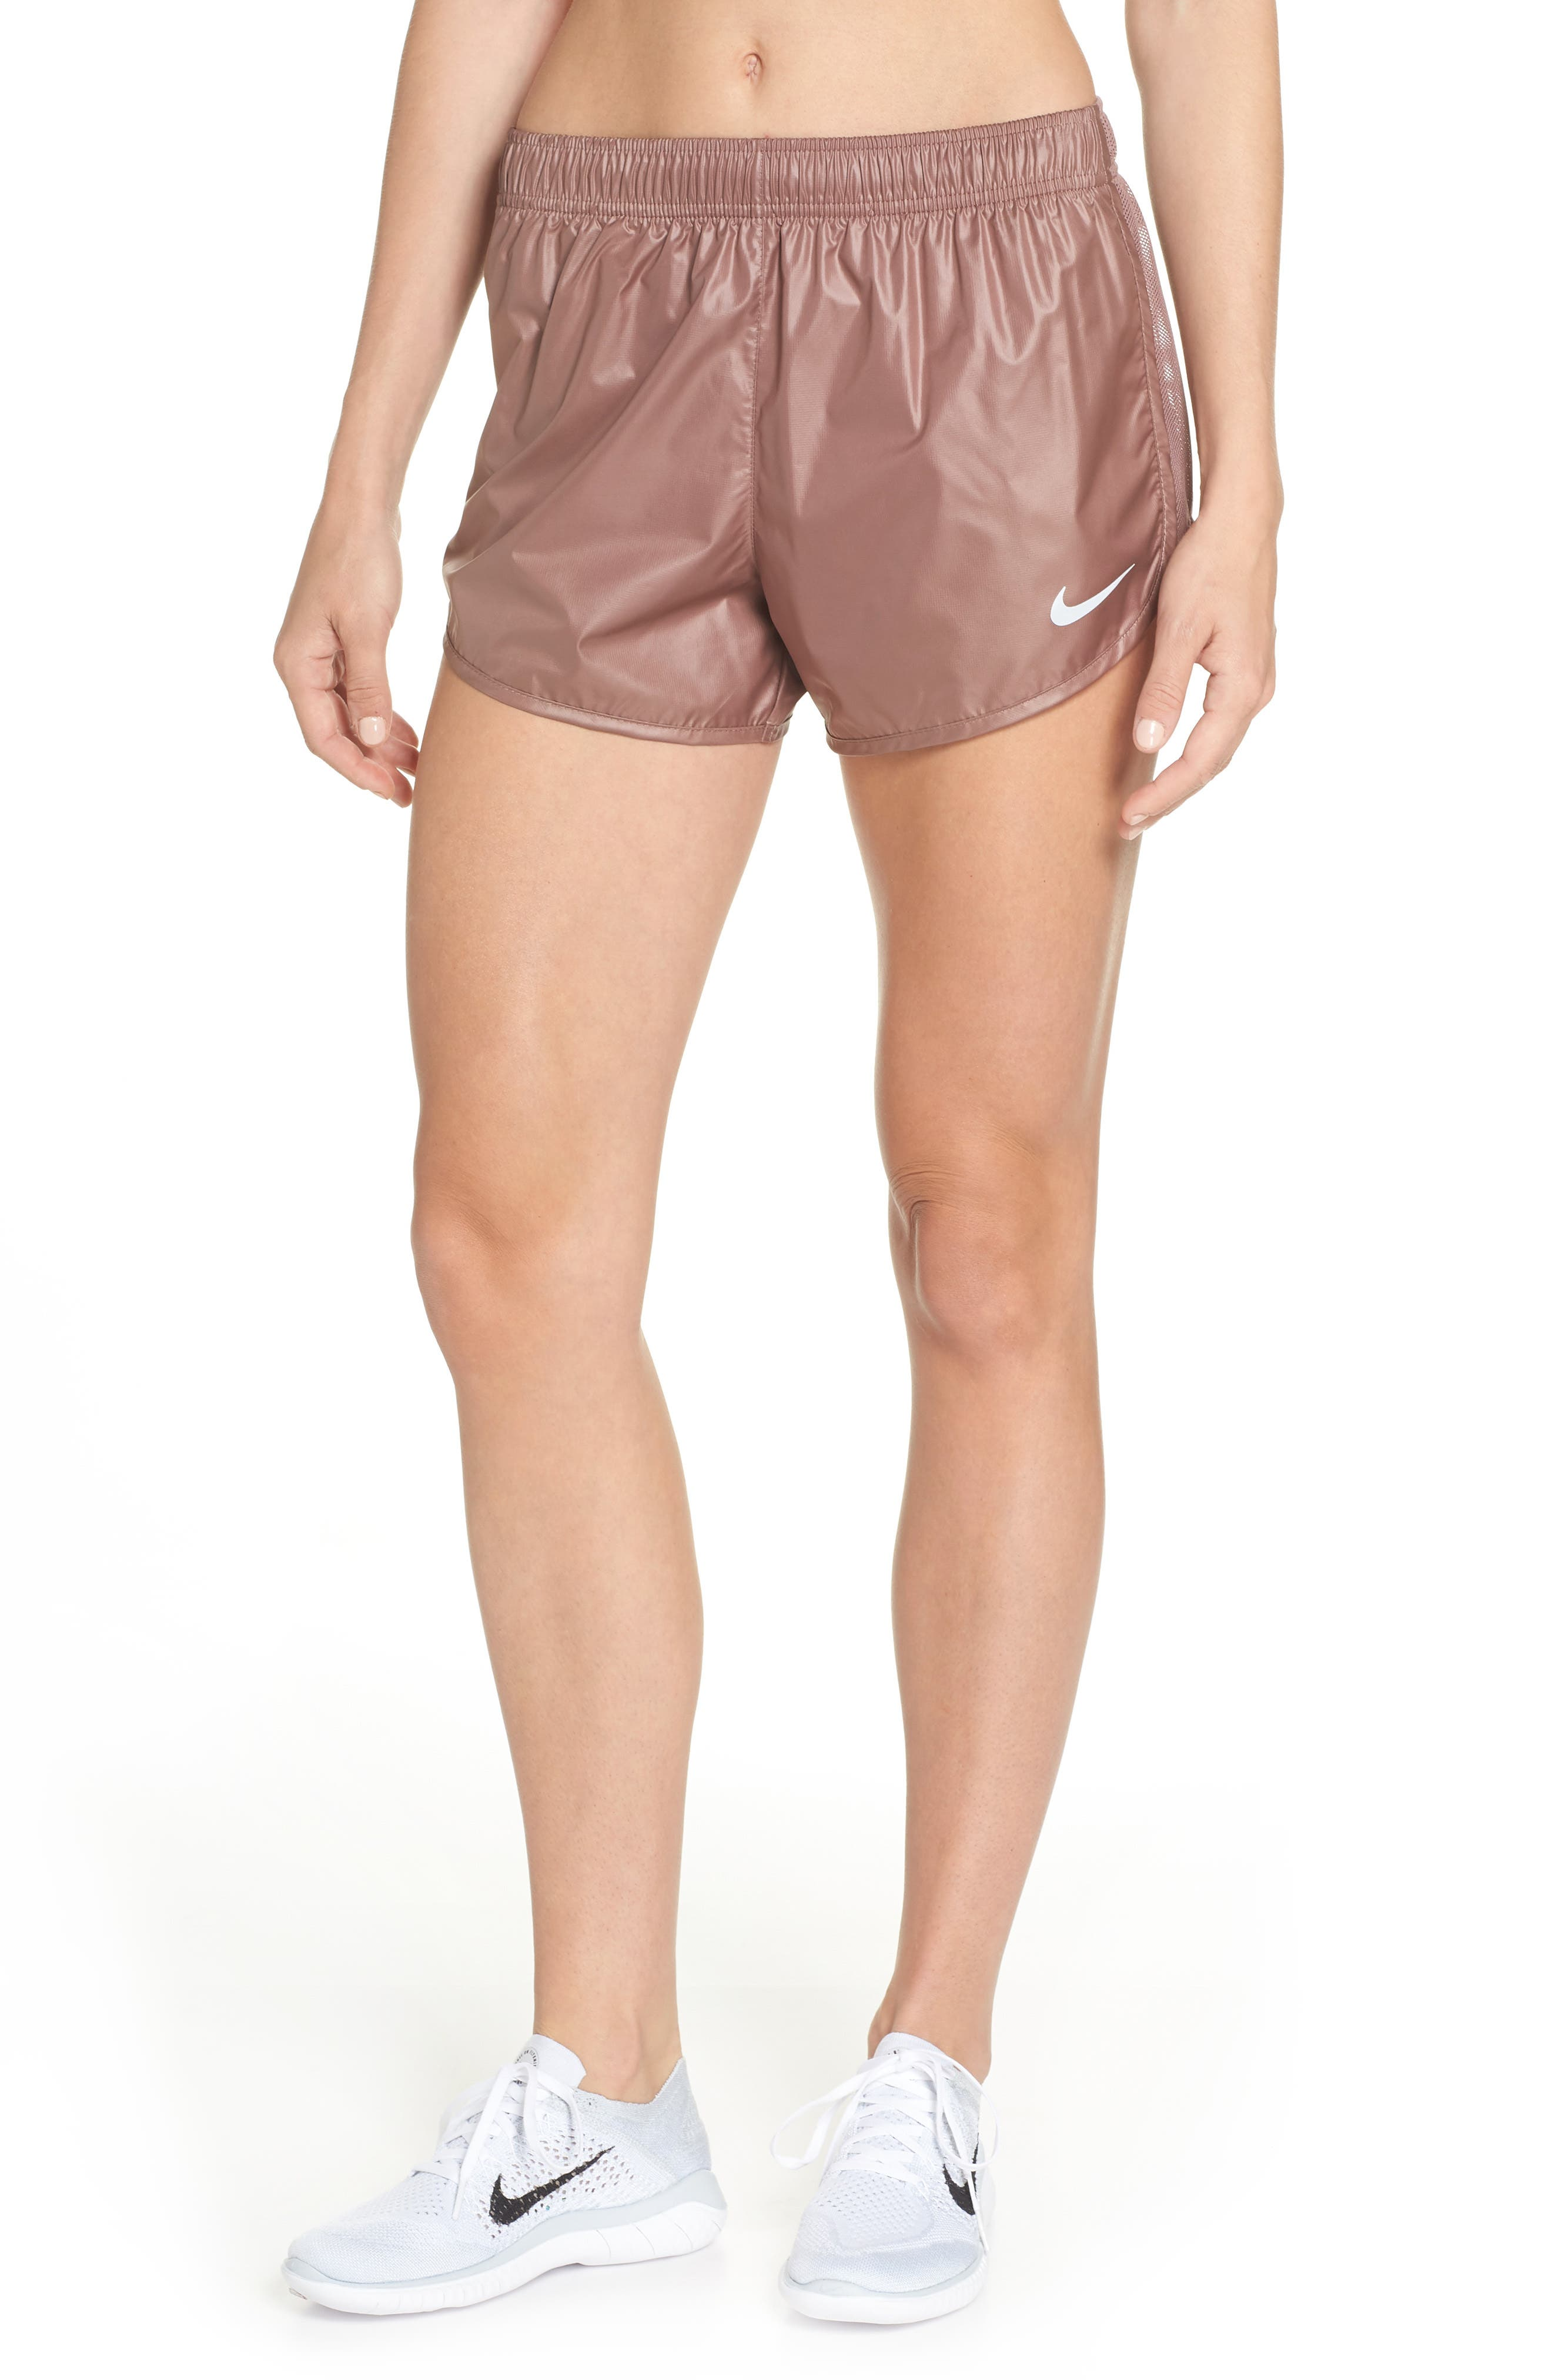 Tempo Running Shorts,                             Main thumbnail 1, color,                             SMOKEY MAUVE